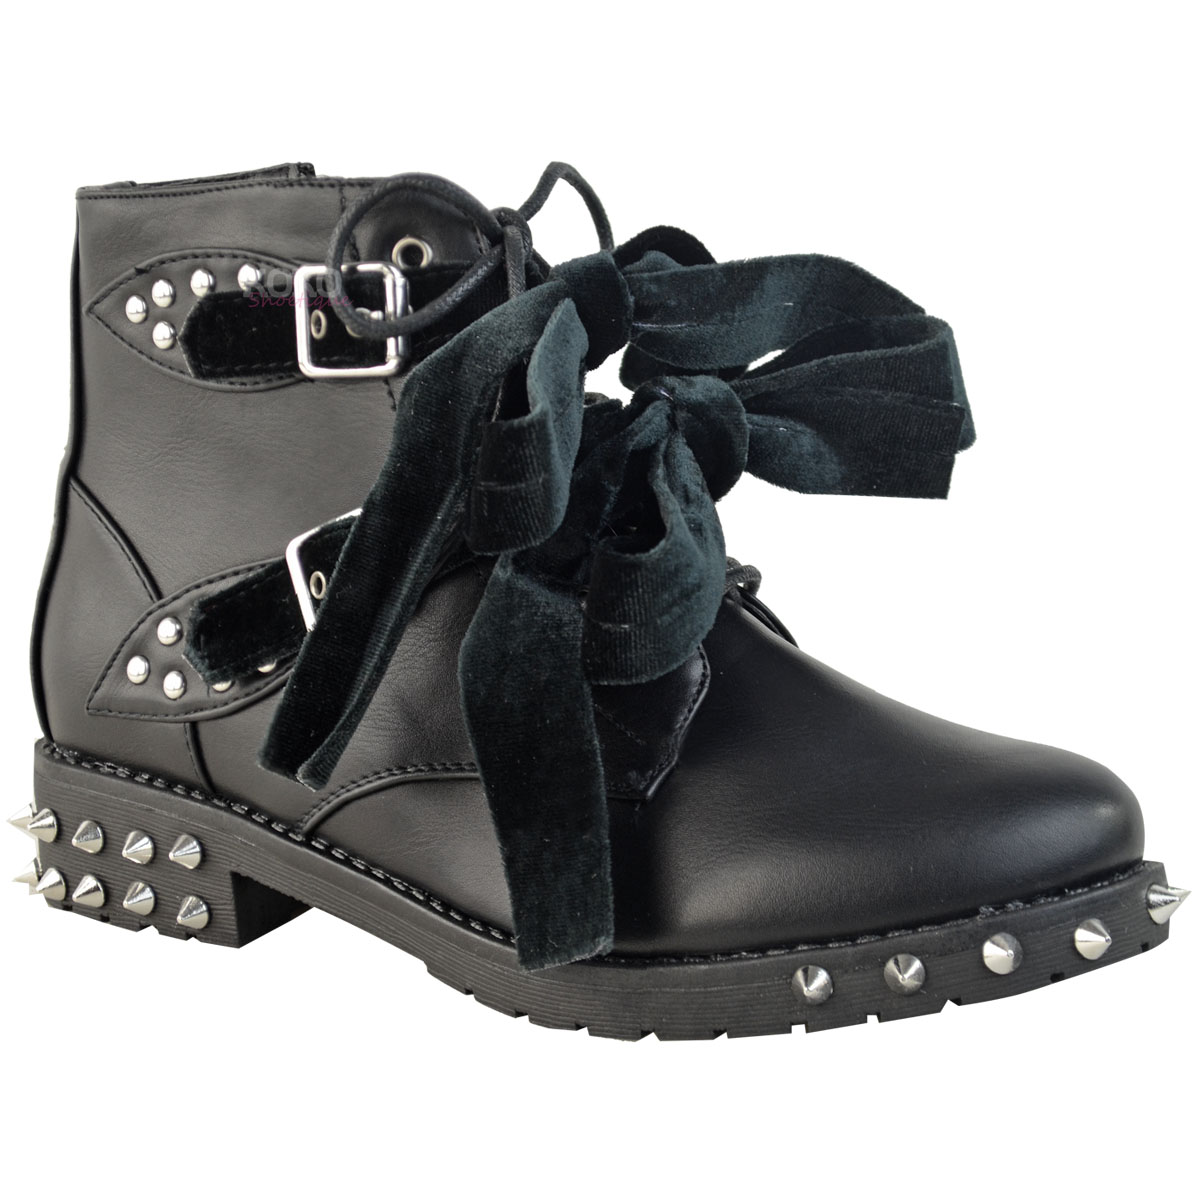 Womens Studded Spikes Low Heel Ankle Boots Biker Goth Size